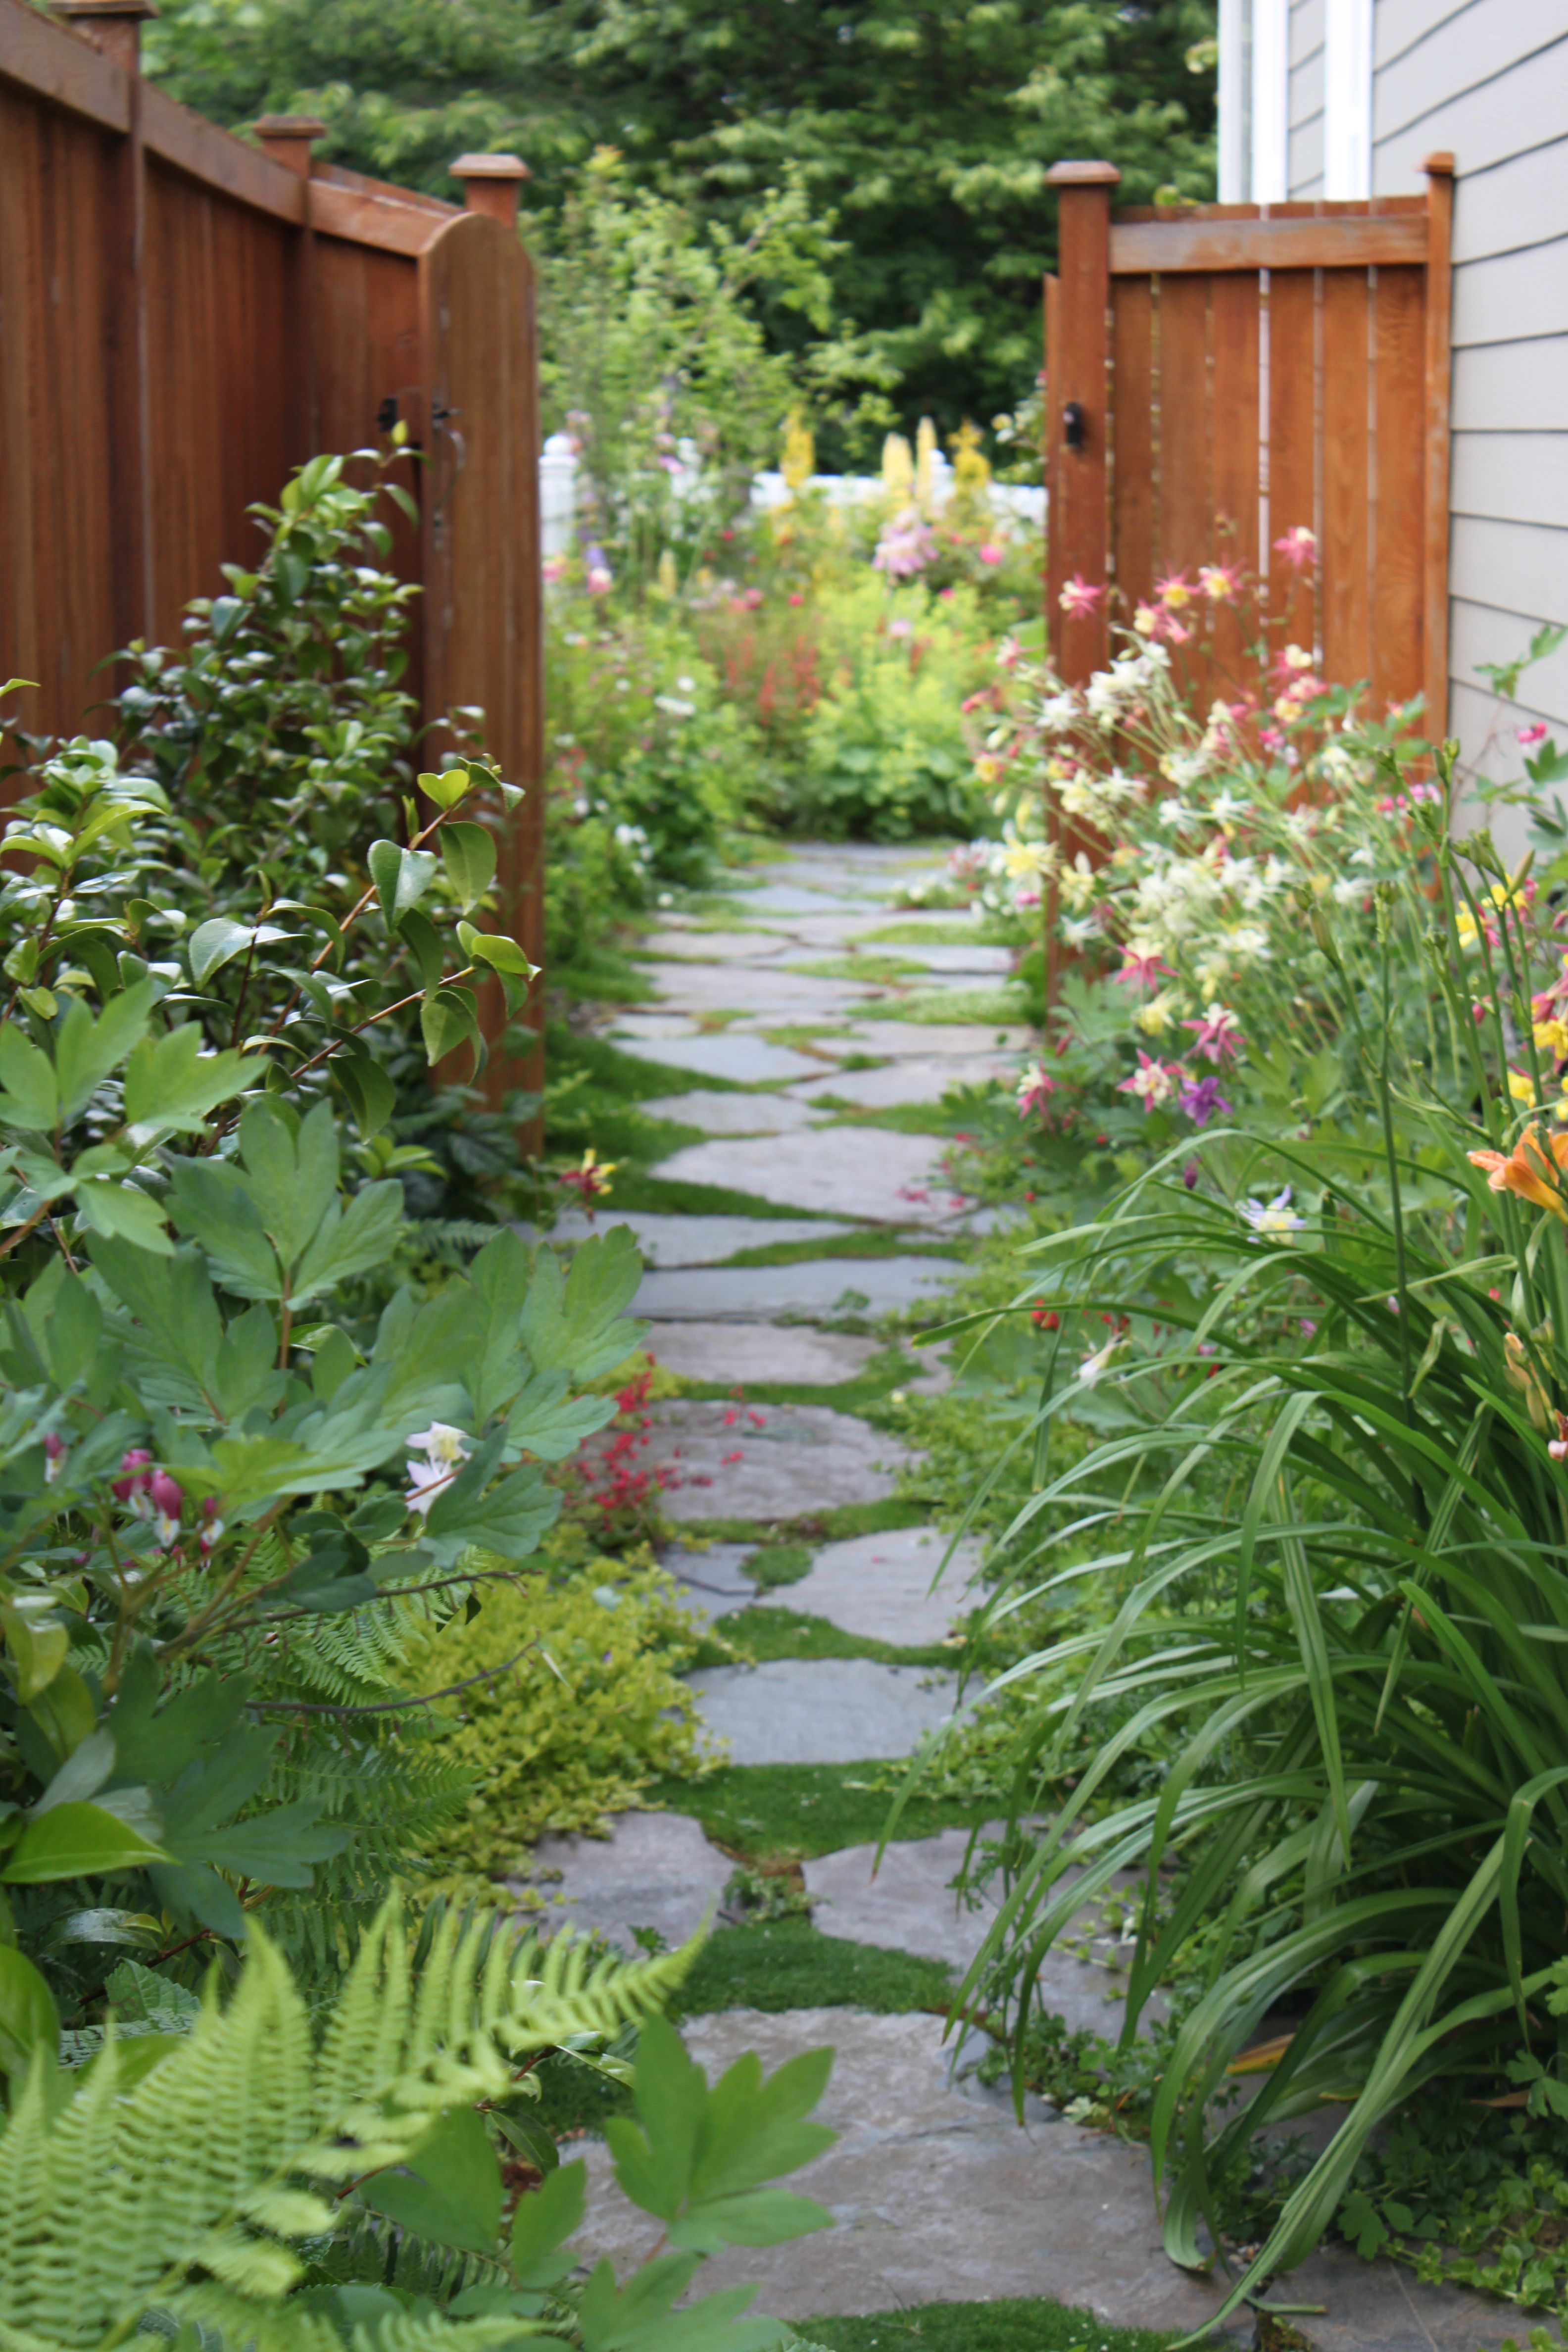 Flagstone Garden Path I Have Never Gardened Before But Now Seems Like A Good Time To Start